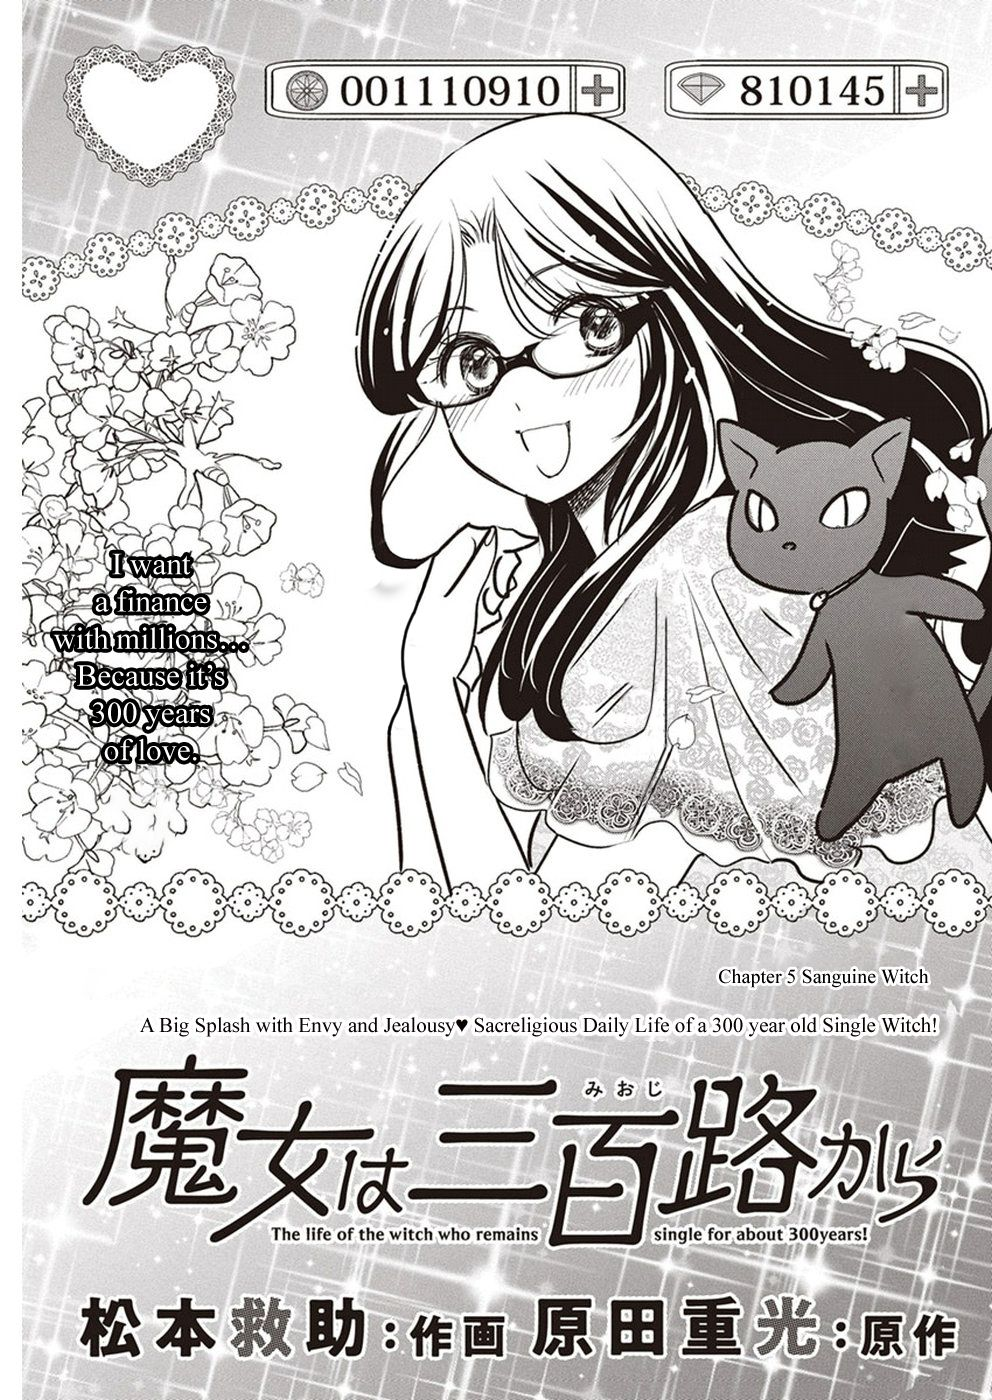 The Life of the Witch Who Remains Single for About 300 Years! - chapter 5 - #2